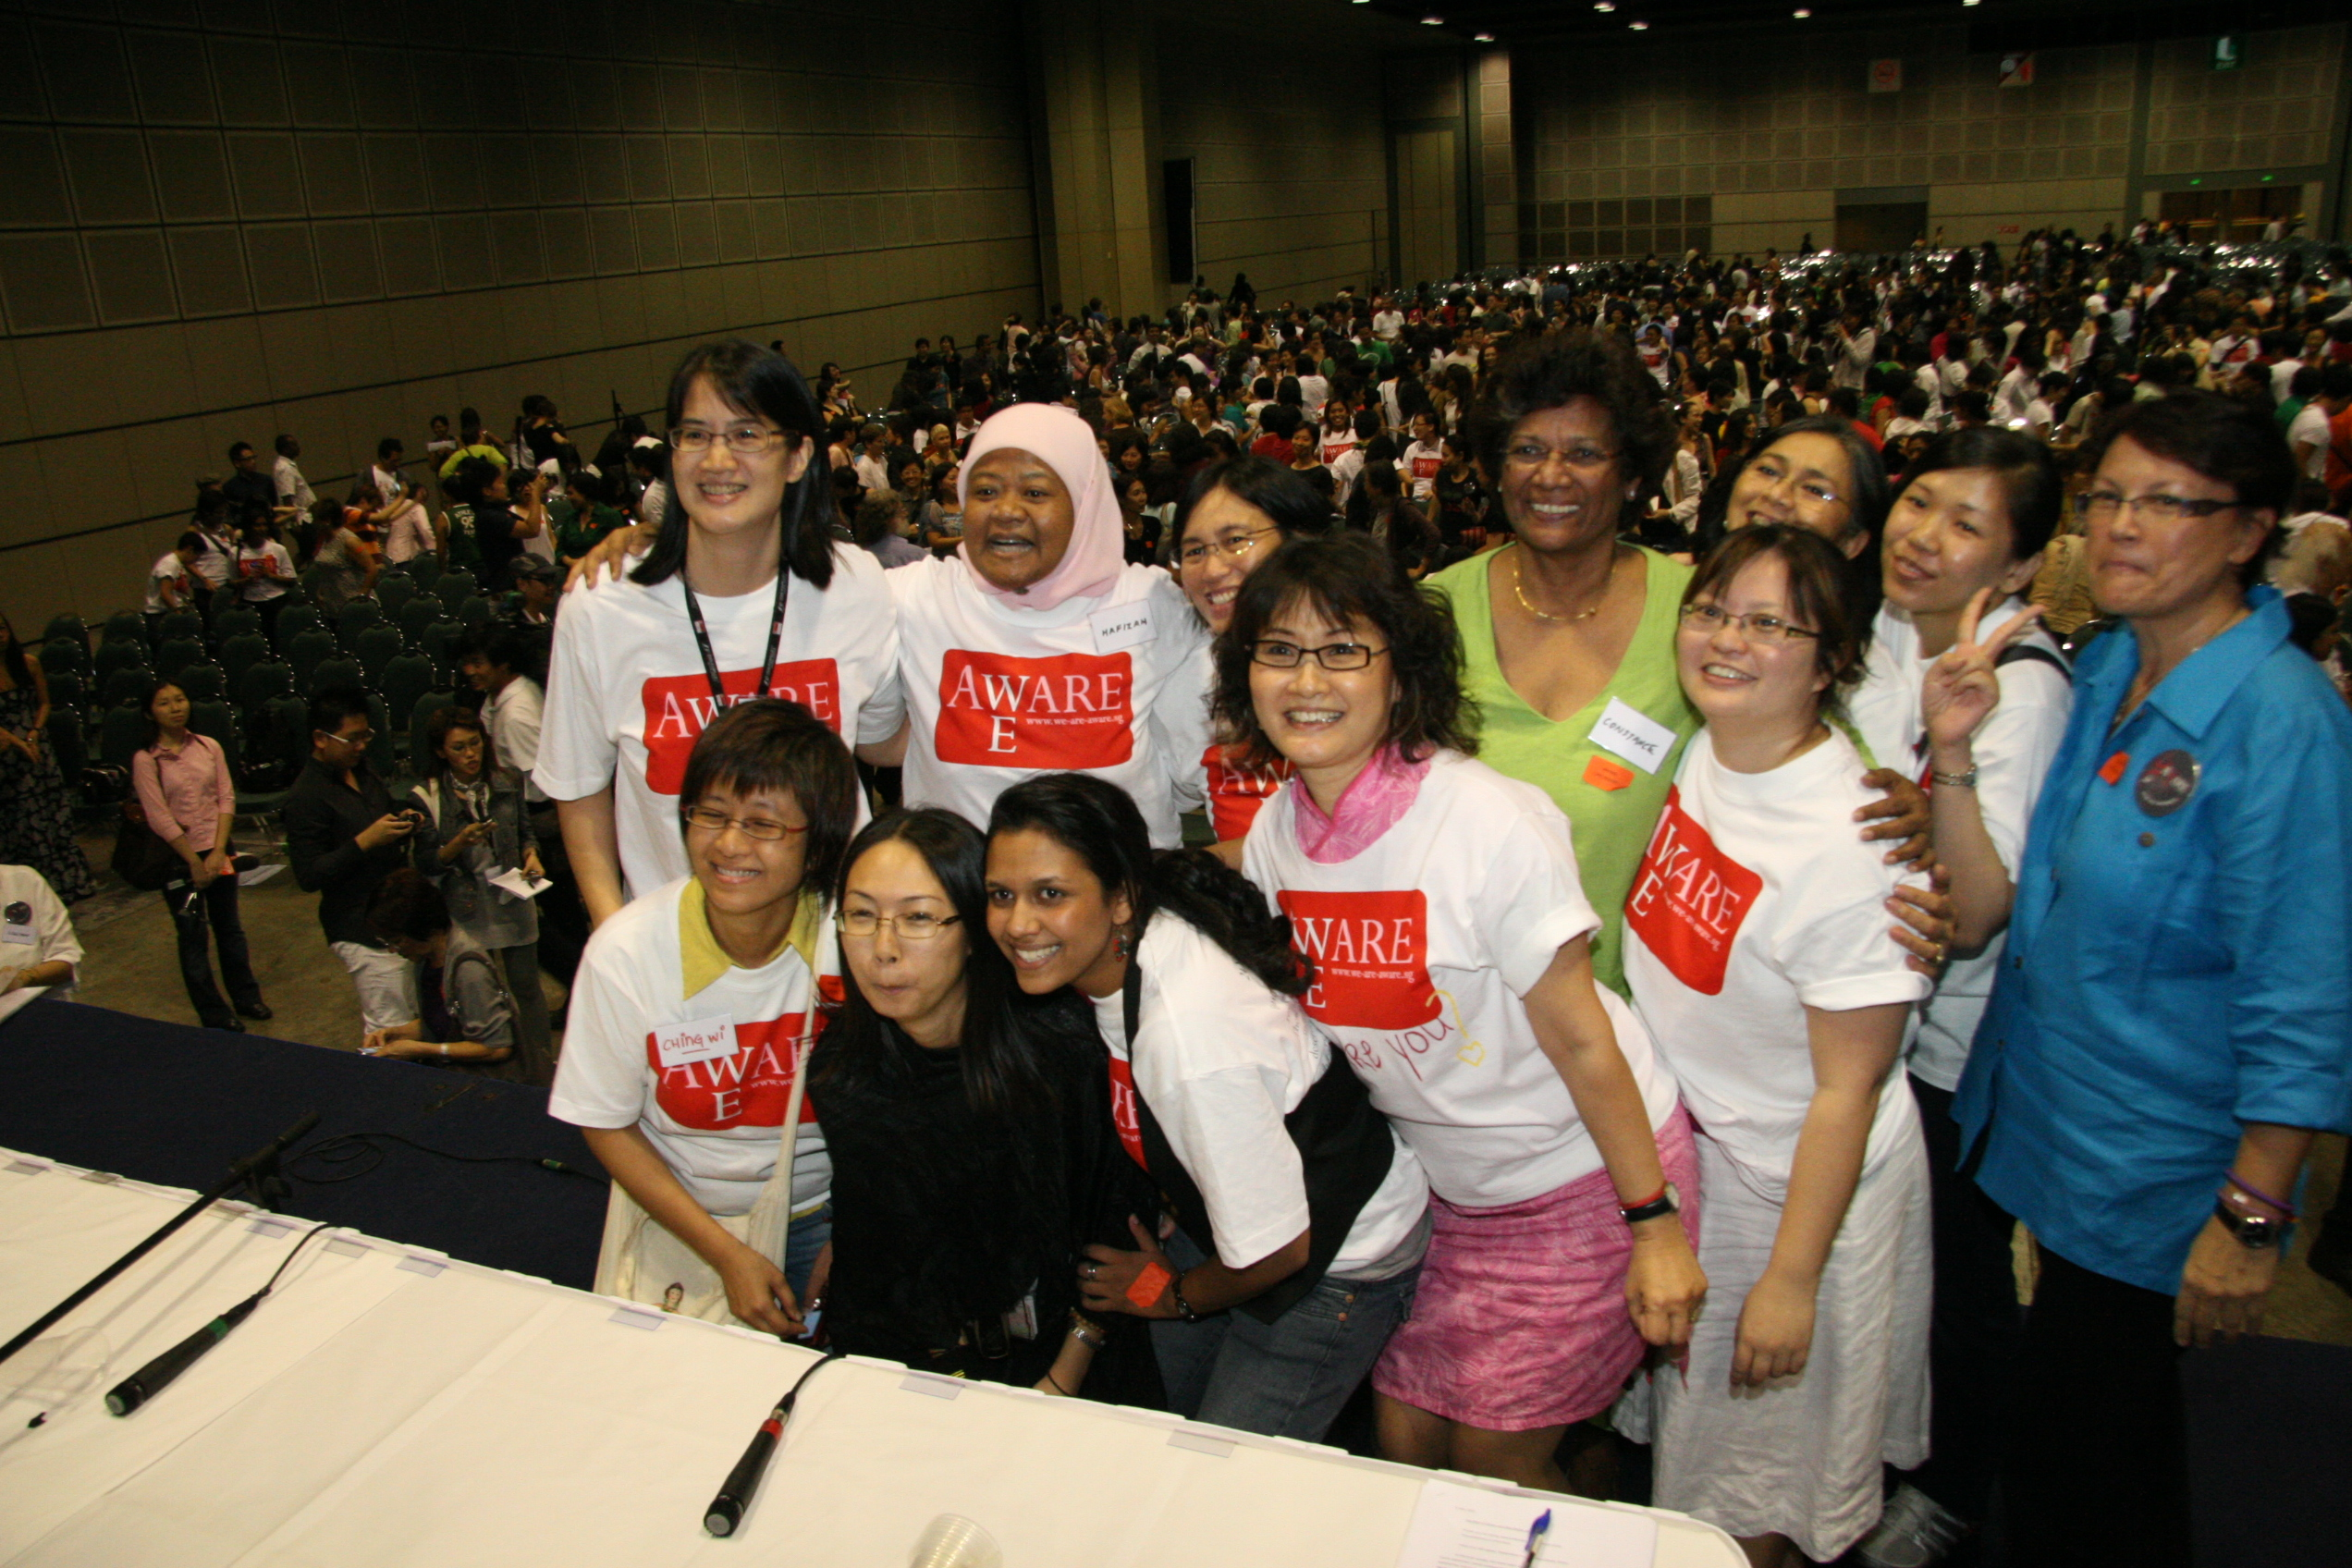 On the left, a group of women pose together facing the camera. Oot is seated in the middle of them wearing a tiara. On the right, Oot stands to the right of another woman, head tilted and smiling cheekily at the camera.